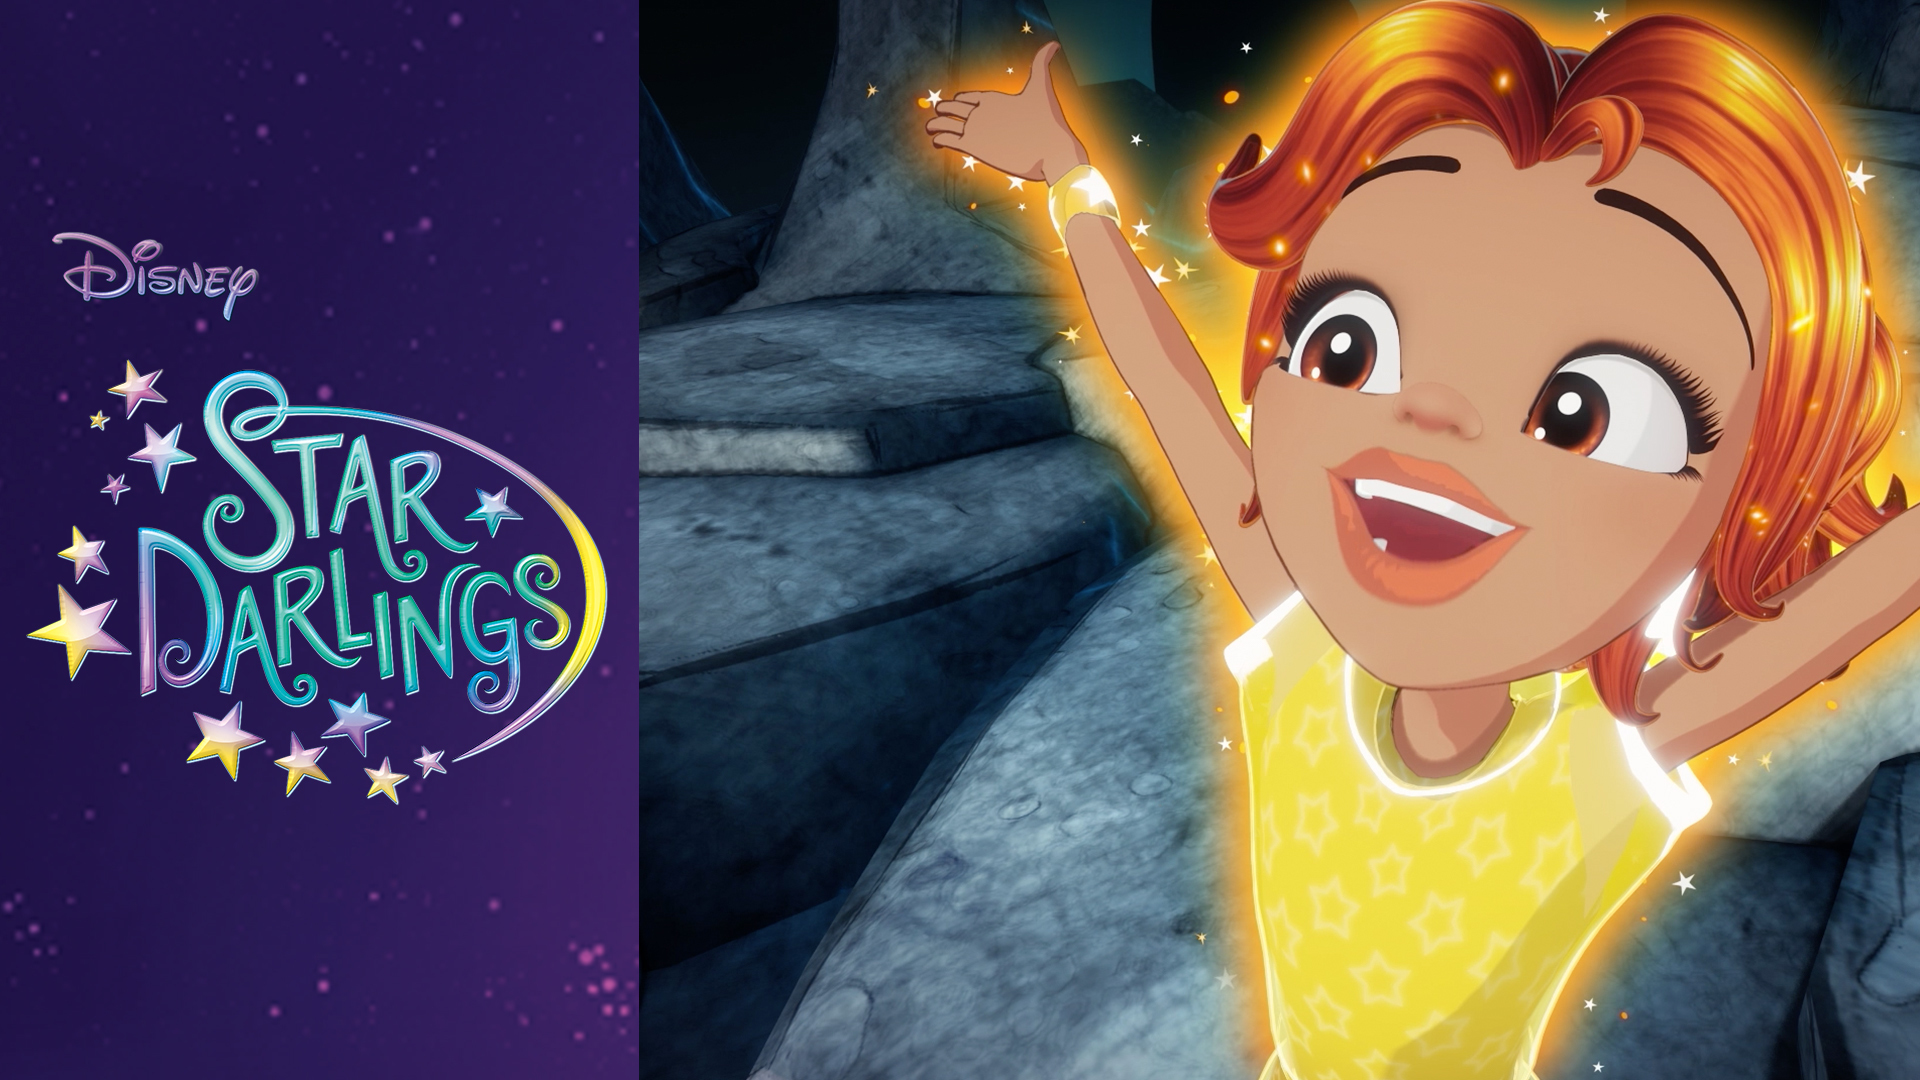 Voice Activated - Disney's Star Darlings Clip